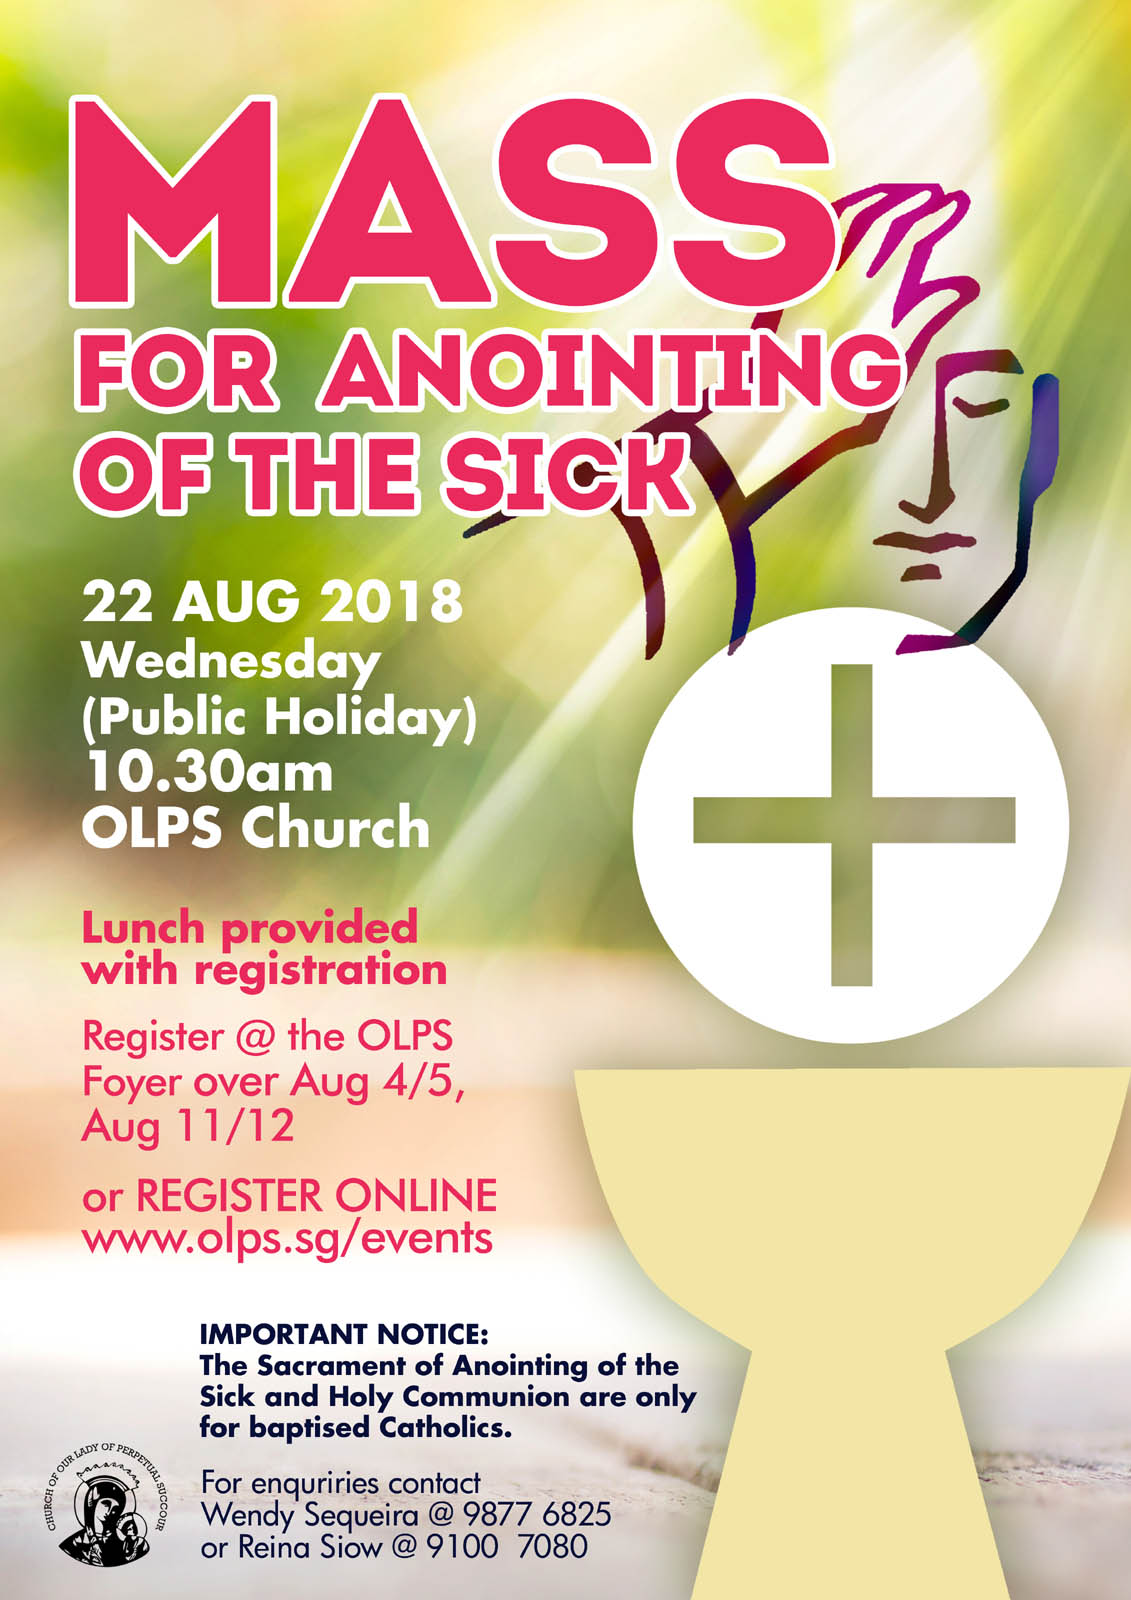 Mass For Anointing Of The Sick 2018 Church Of Our Lady Of